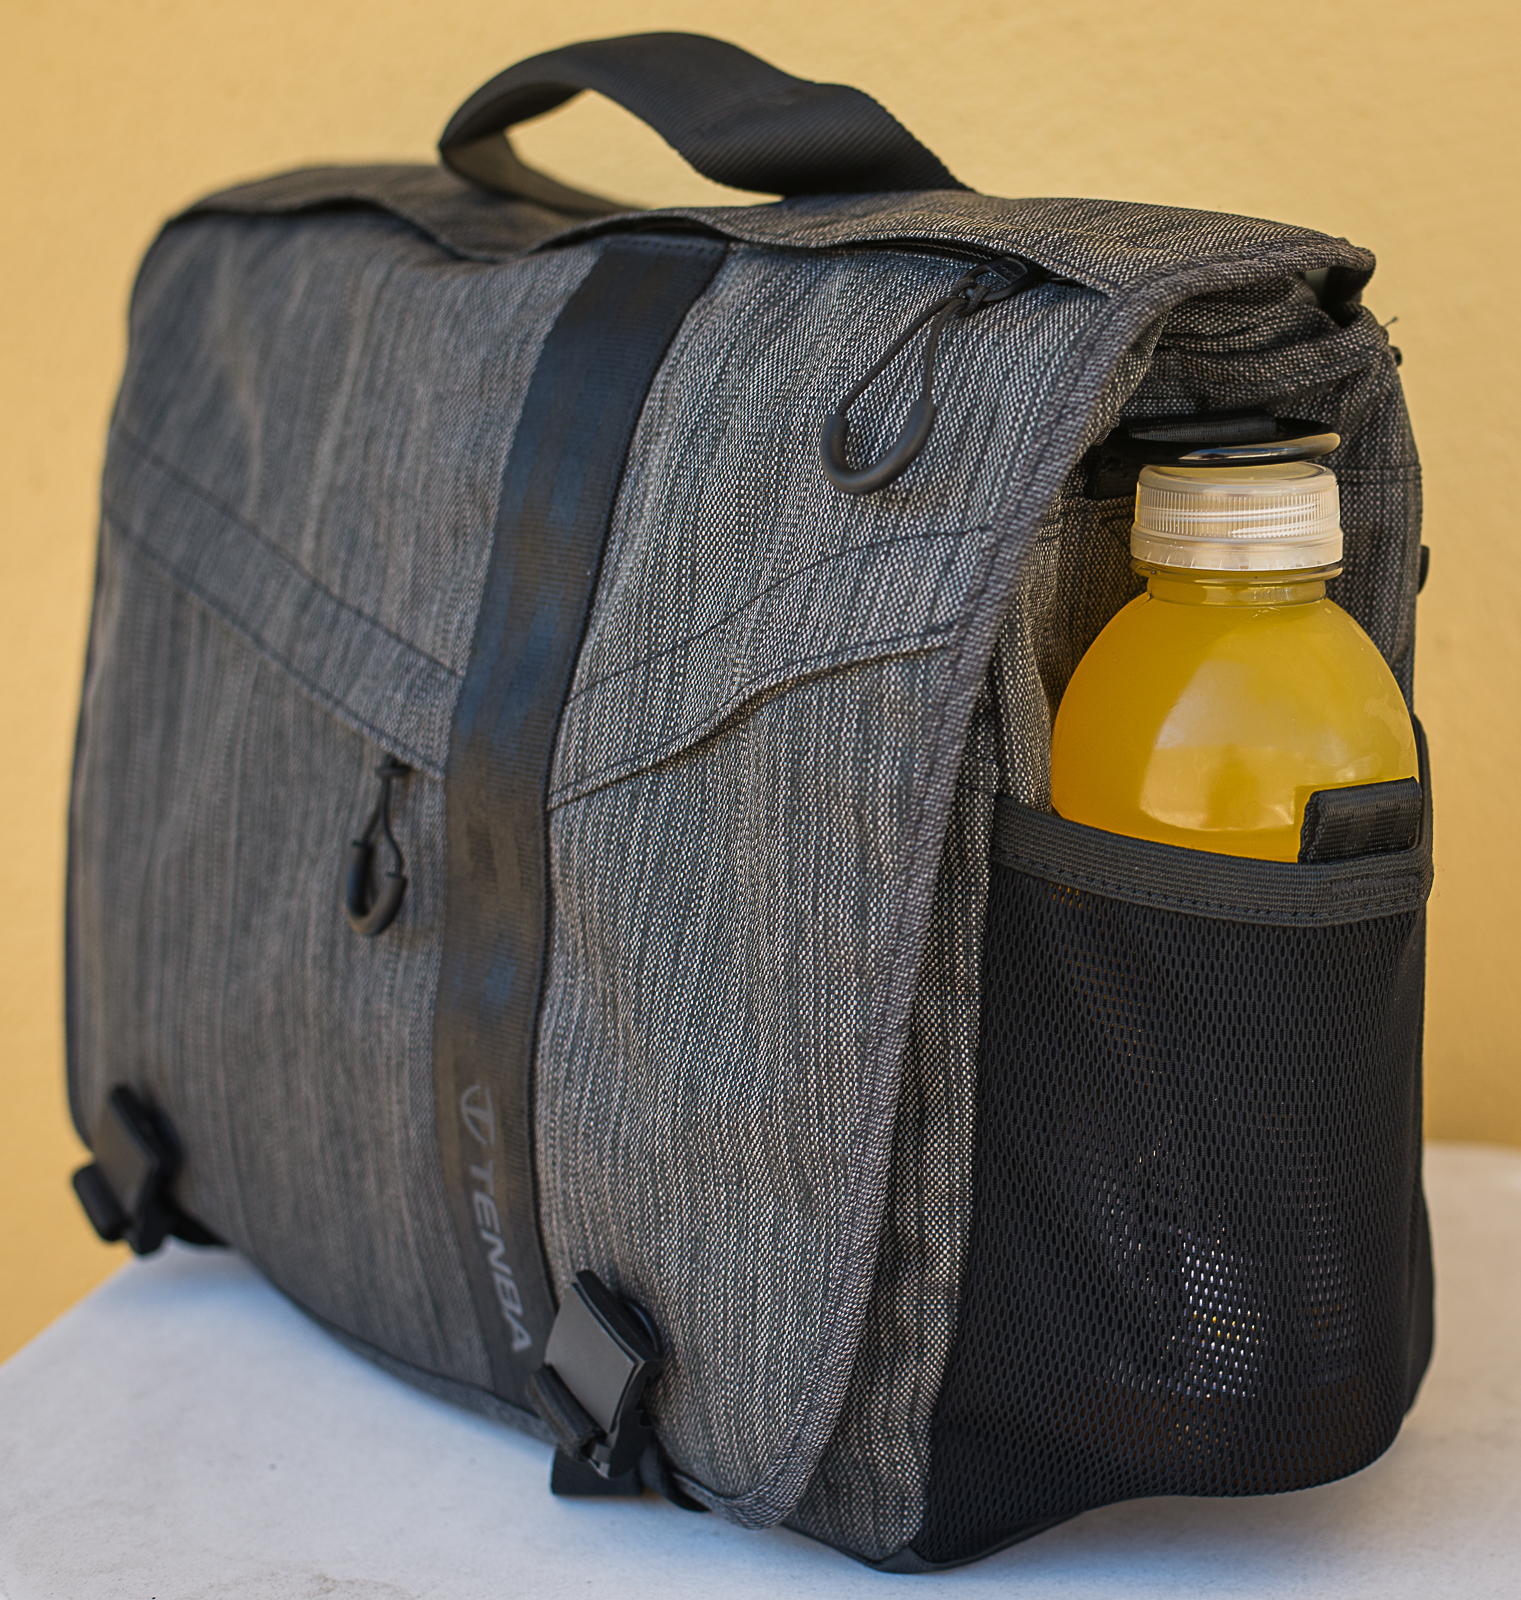 Stretch mesh side pockets well suited to 20oz bottles.